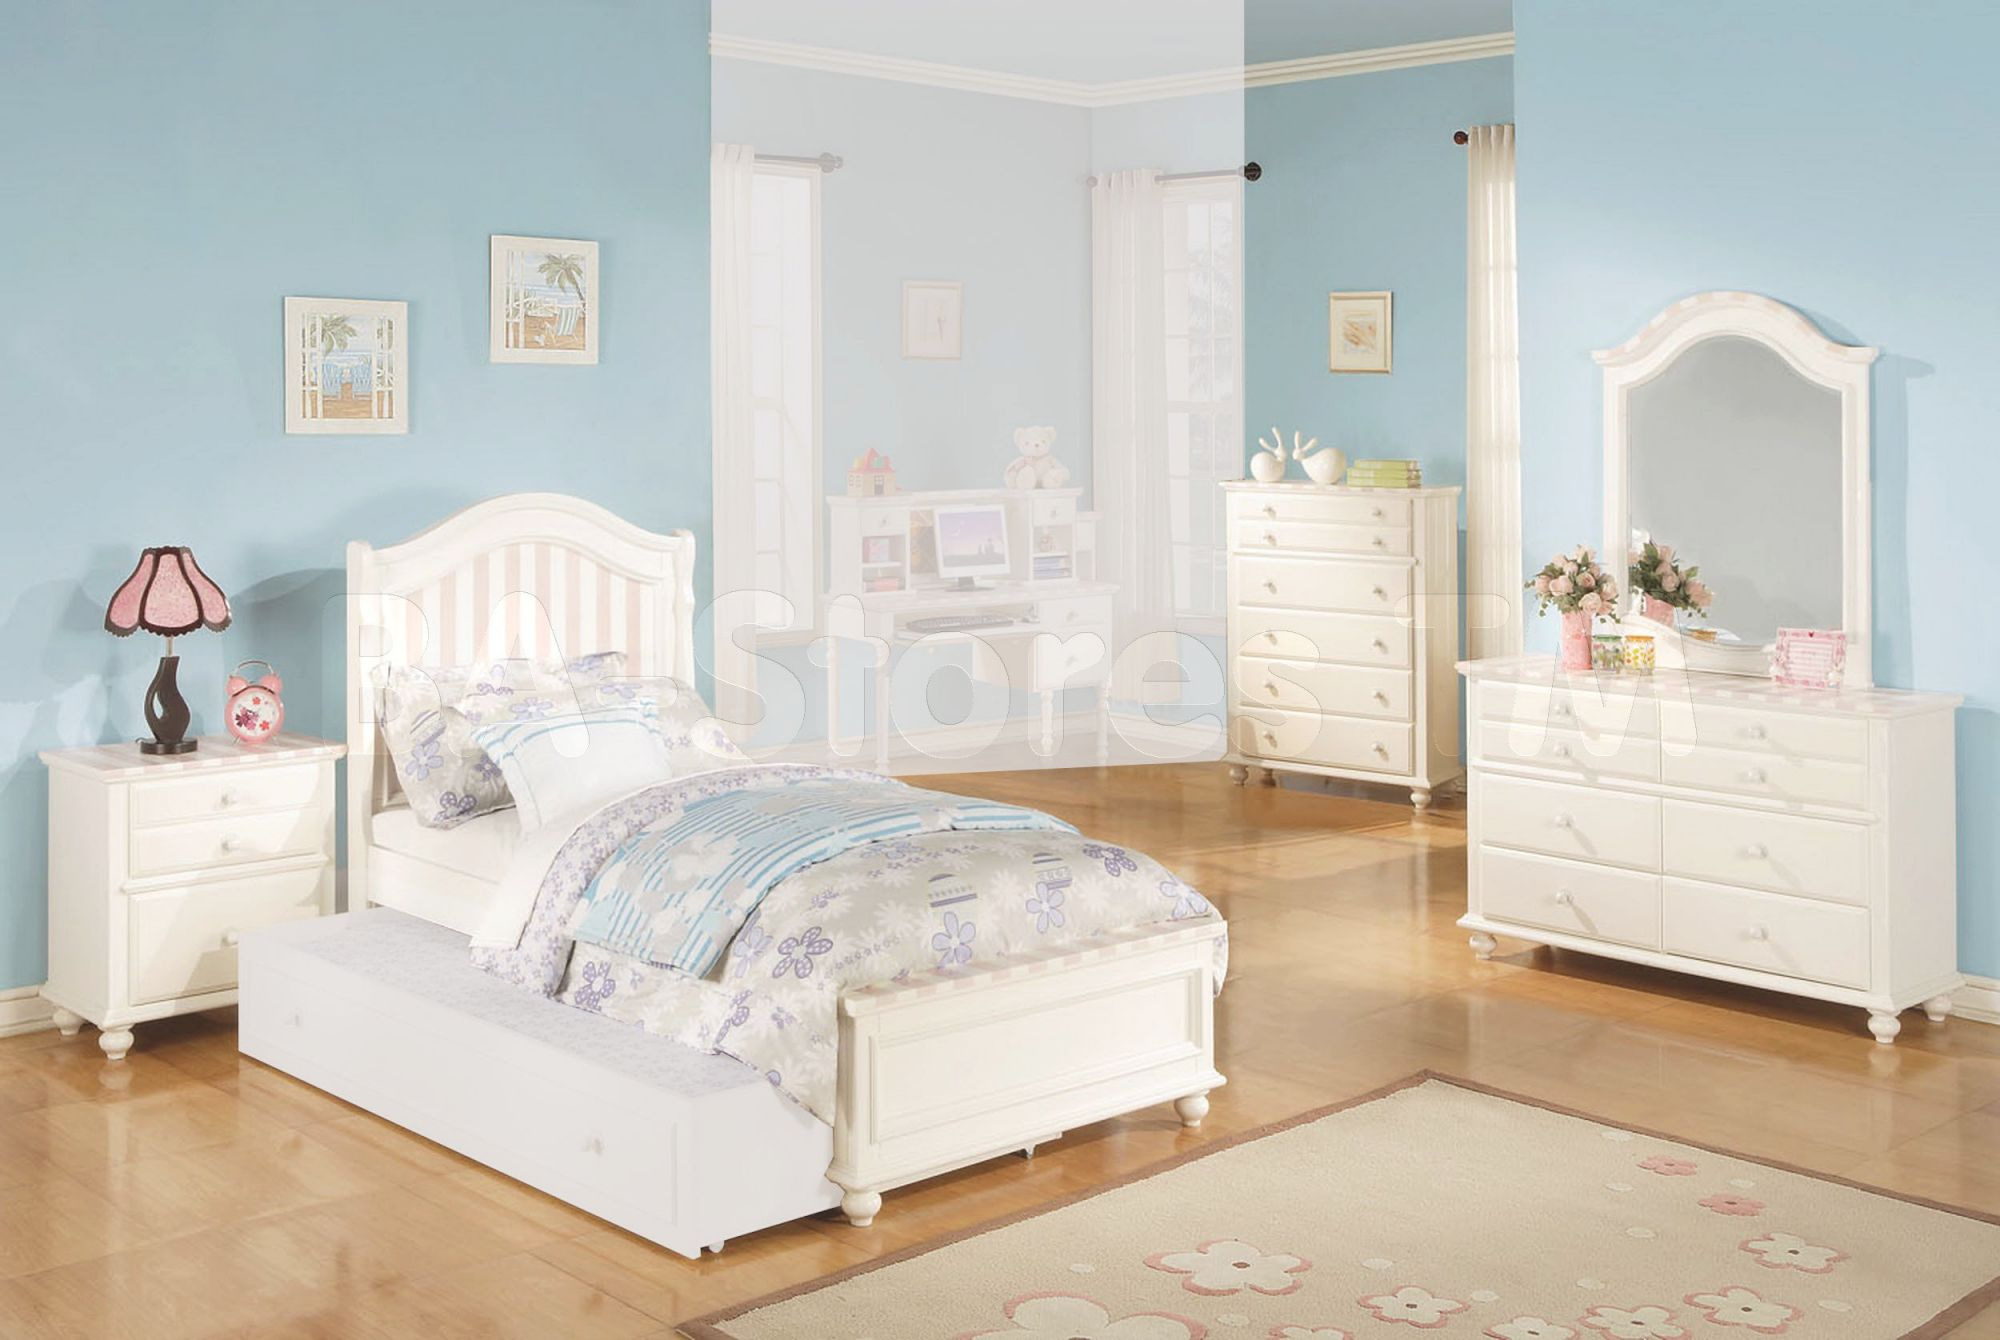 Marvellous Beautiful Girls Bedroom Furniture Sets Childrens for Teen Bedroom Furniture Sets